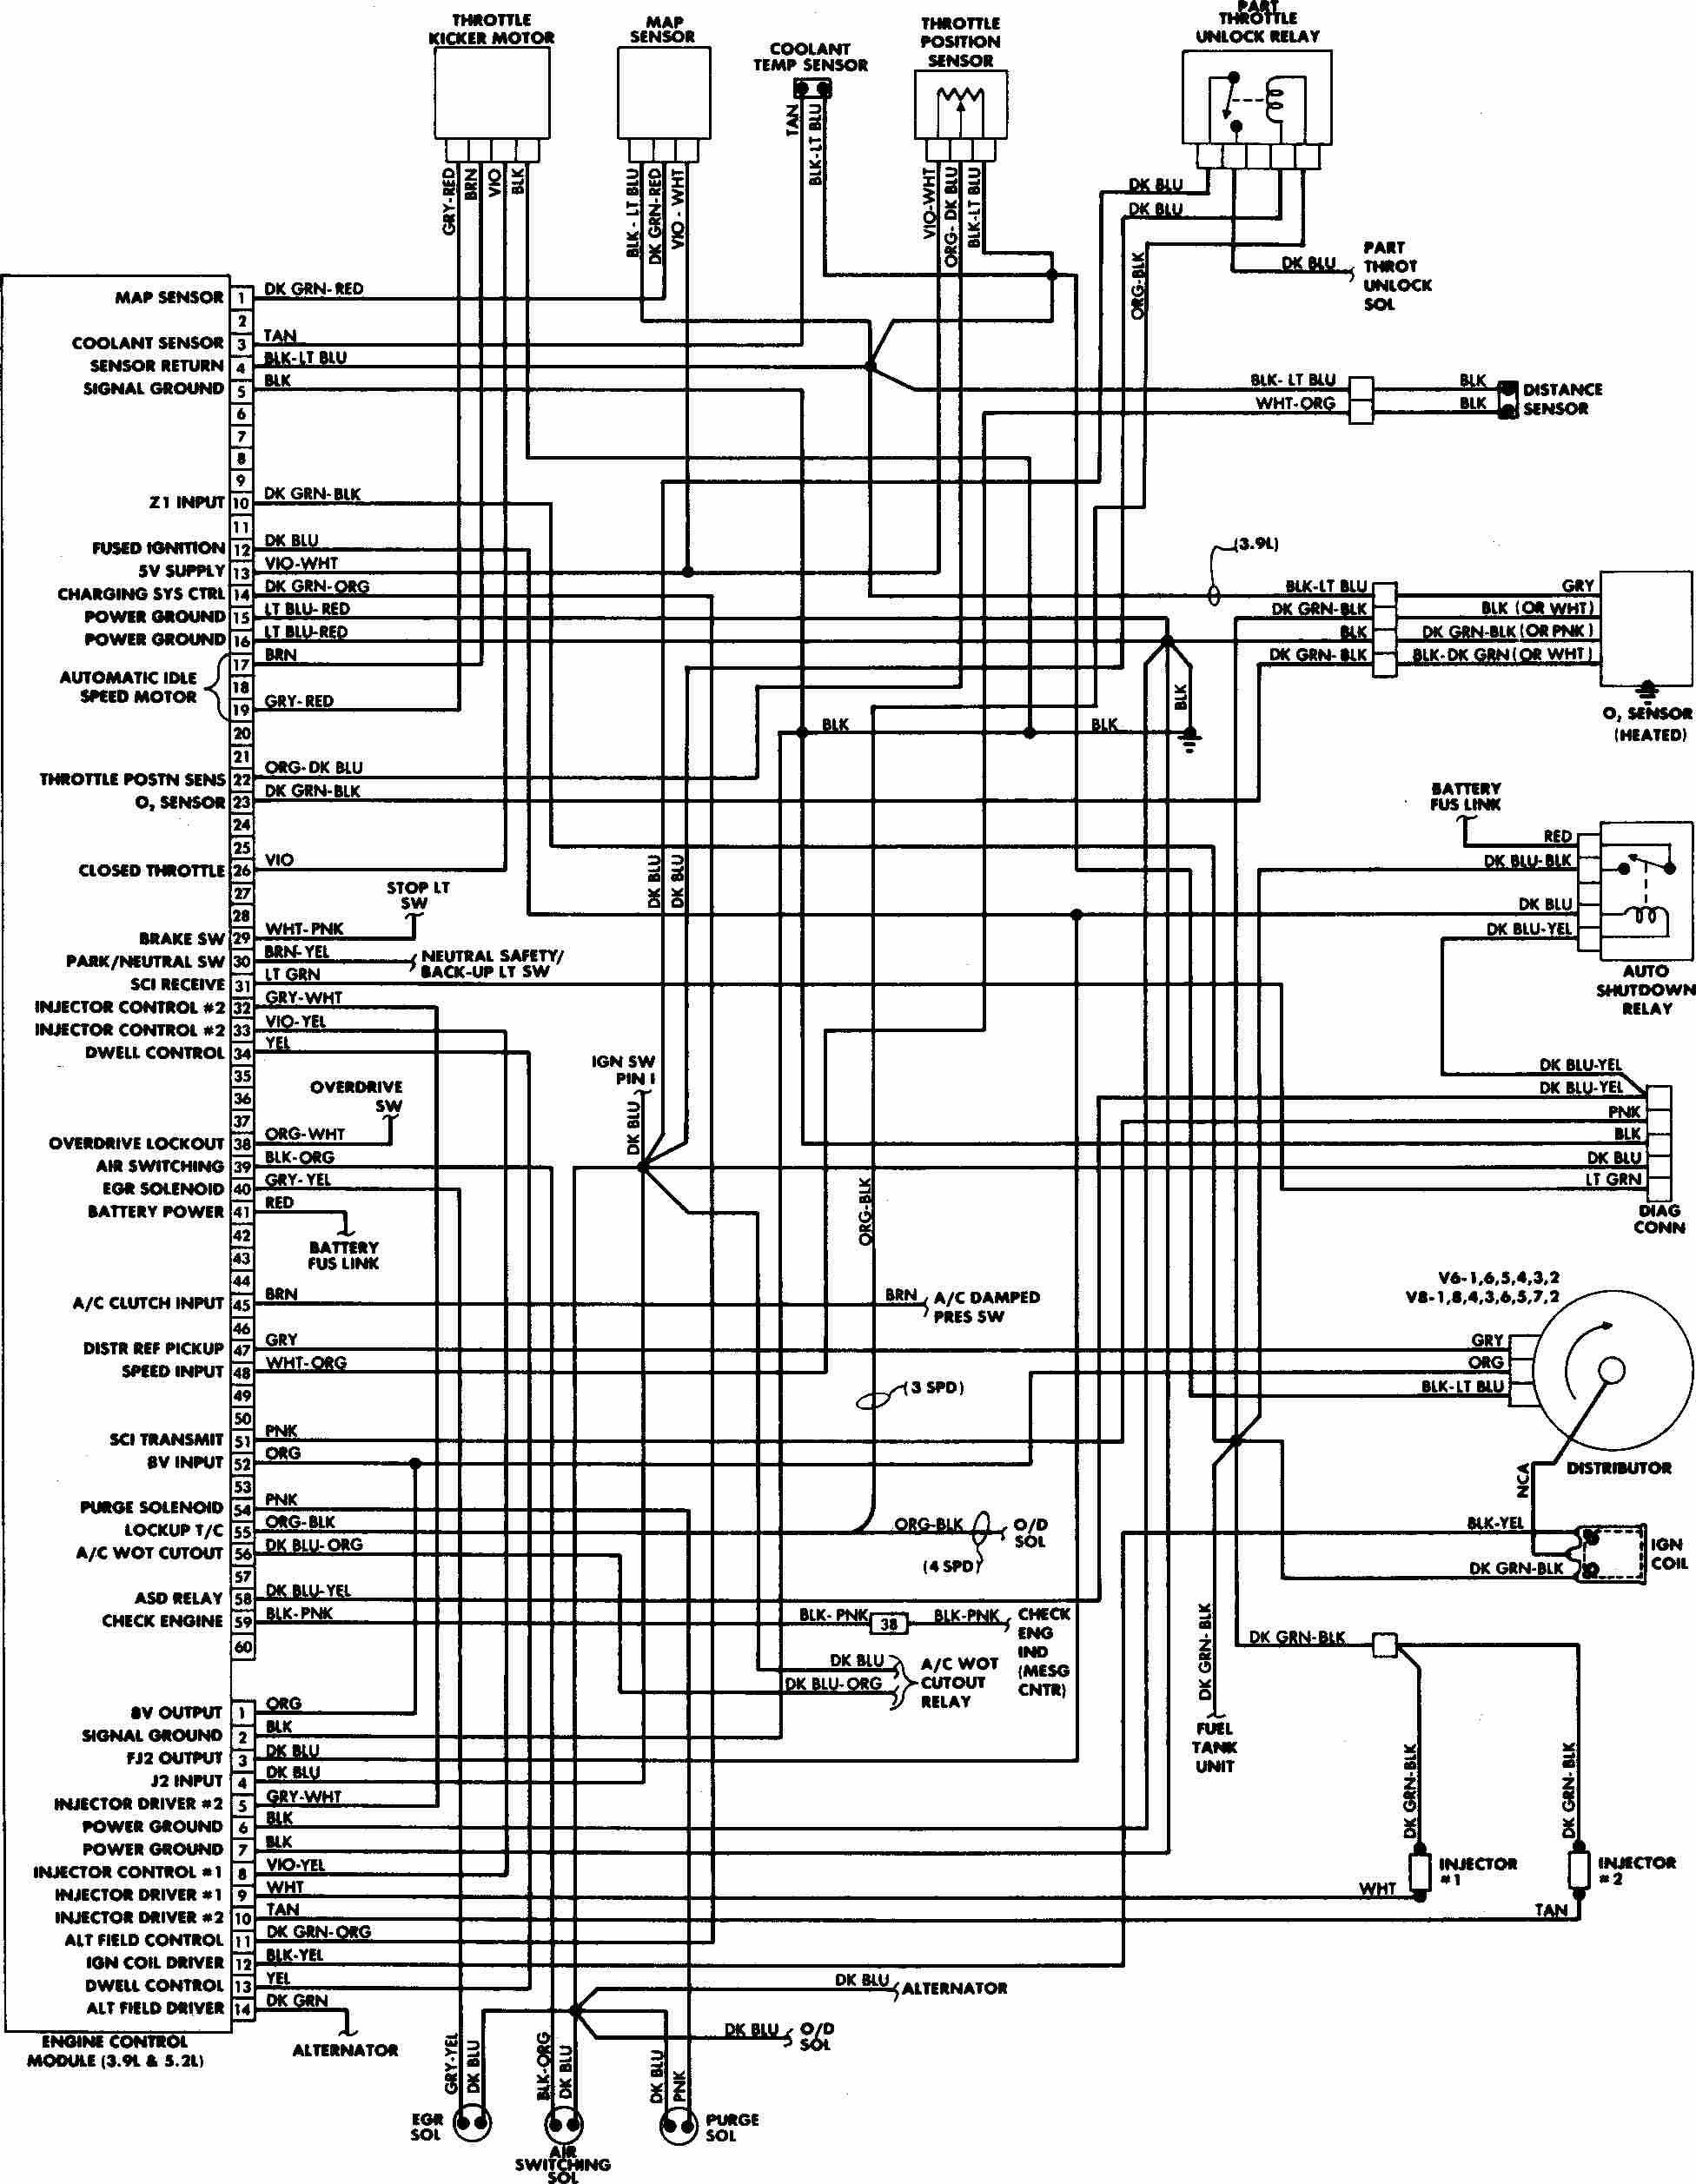 dodge alternator wiring neon wiring schematic e4 wiring diagram dodge cummins alternator wiring diagram neon wiring schematic e4 wiring diagram